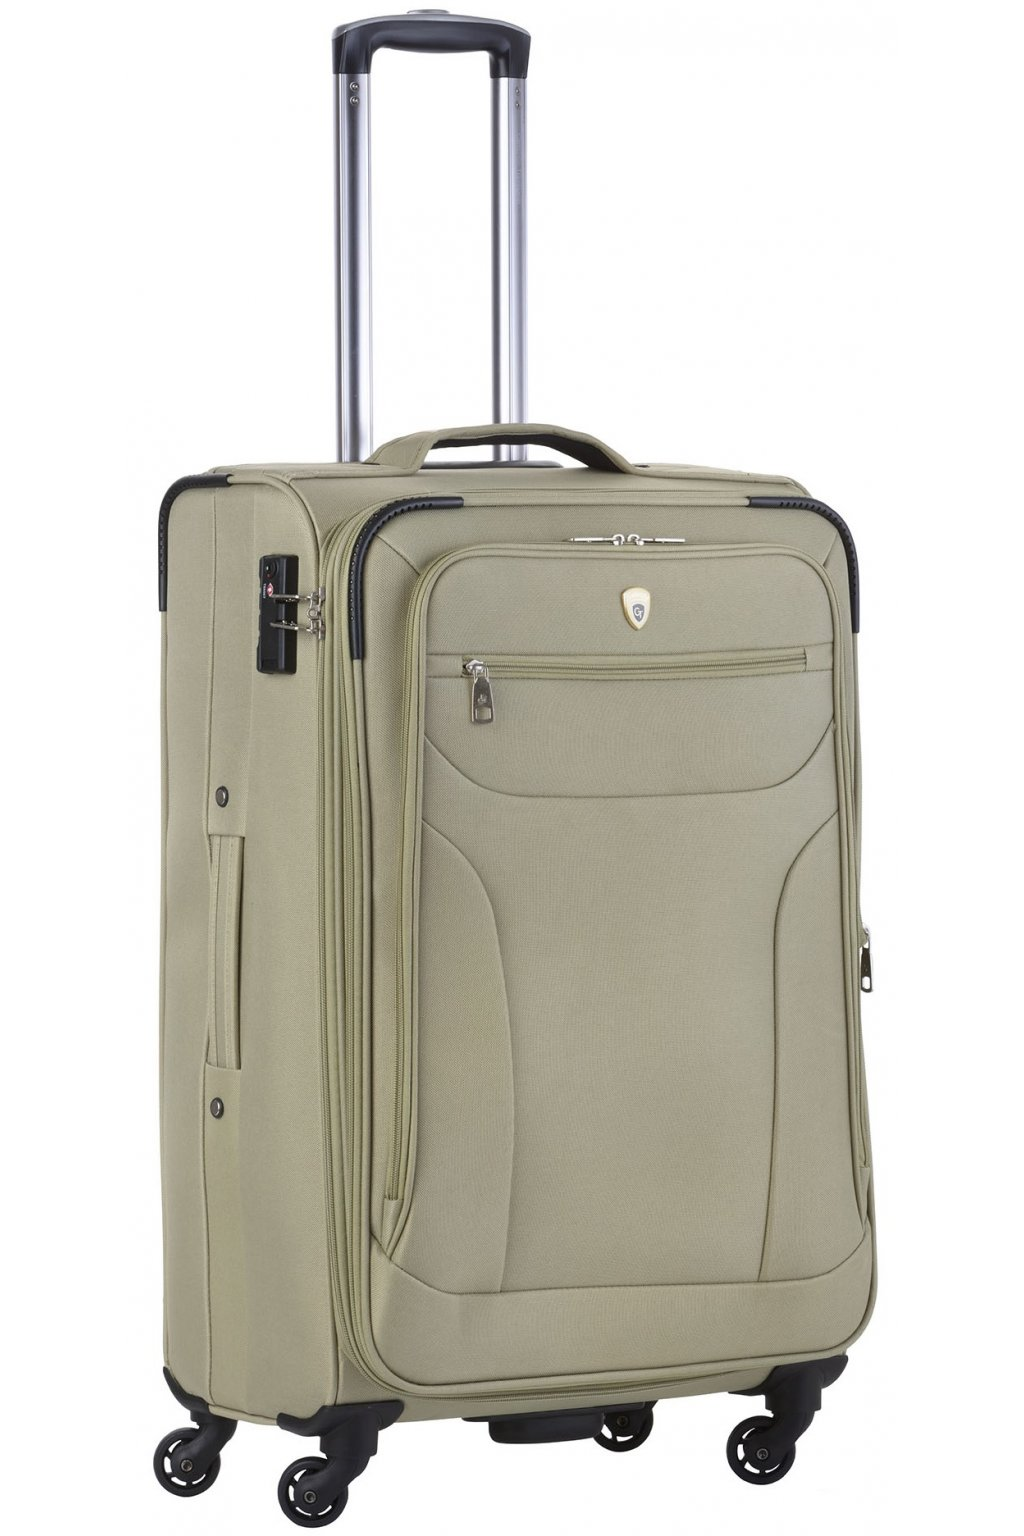 kufrland carryon cambridge khaki(4)